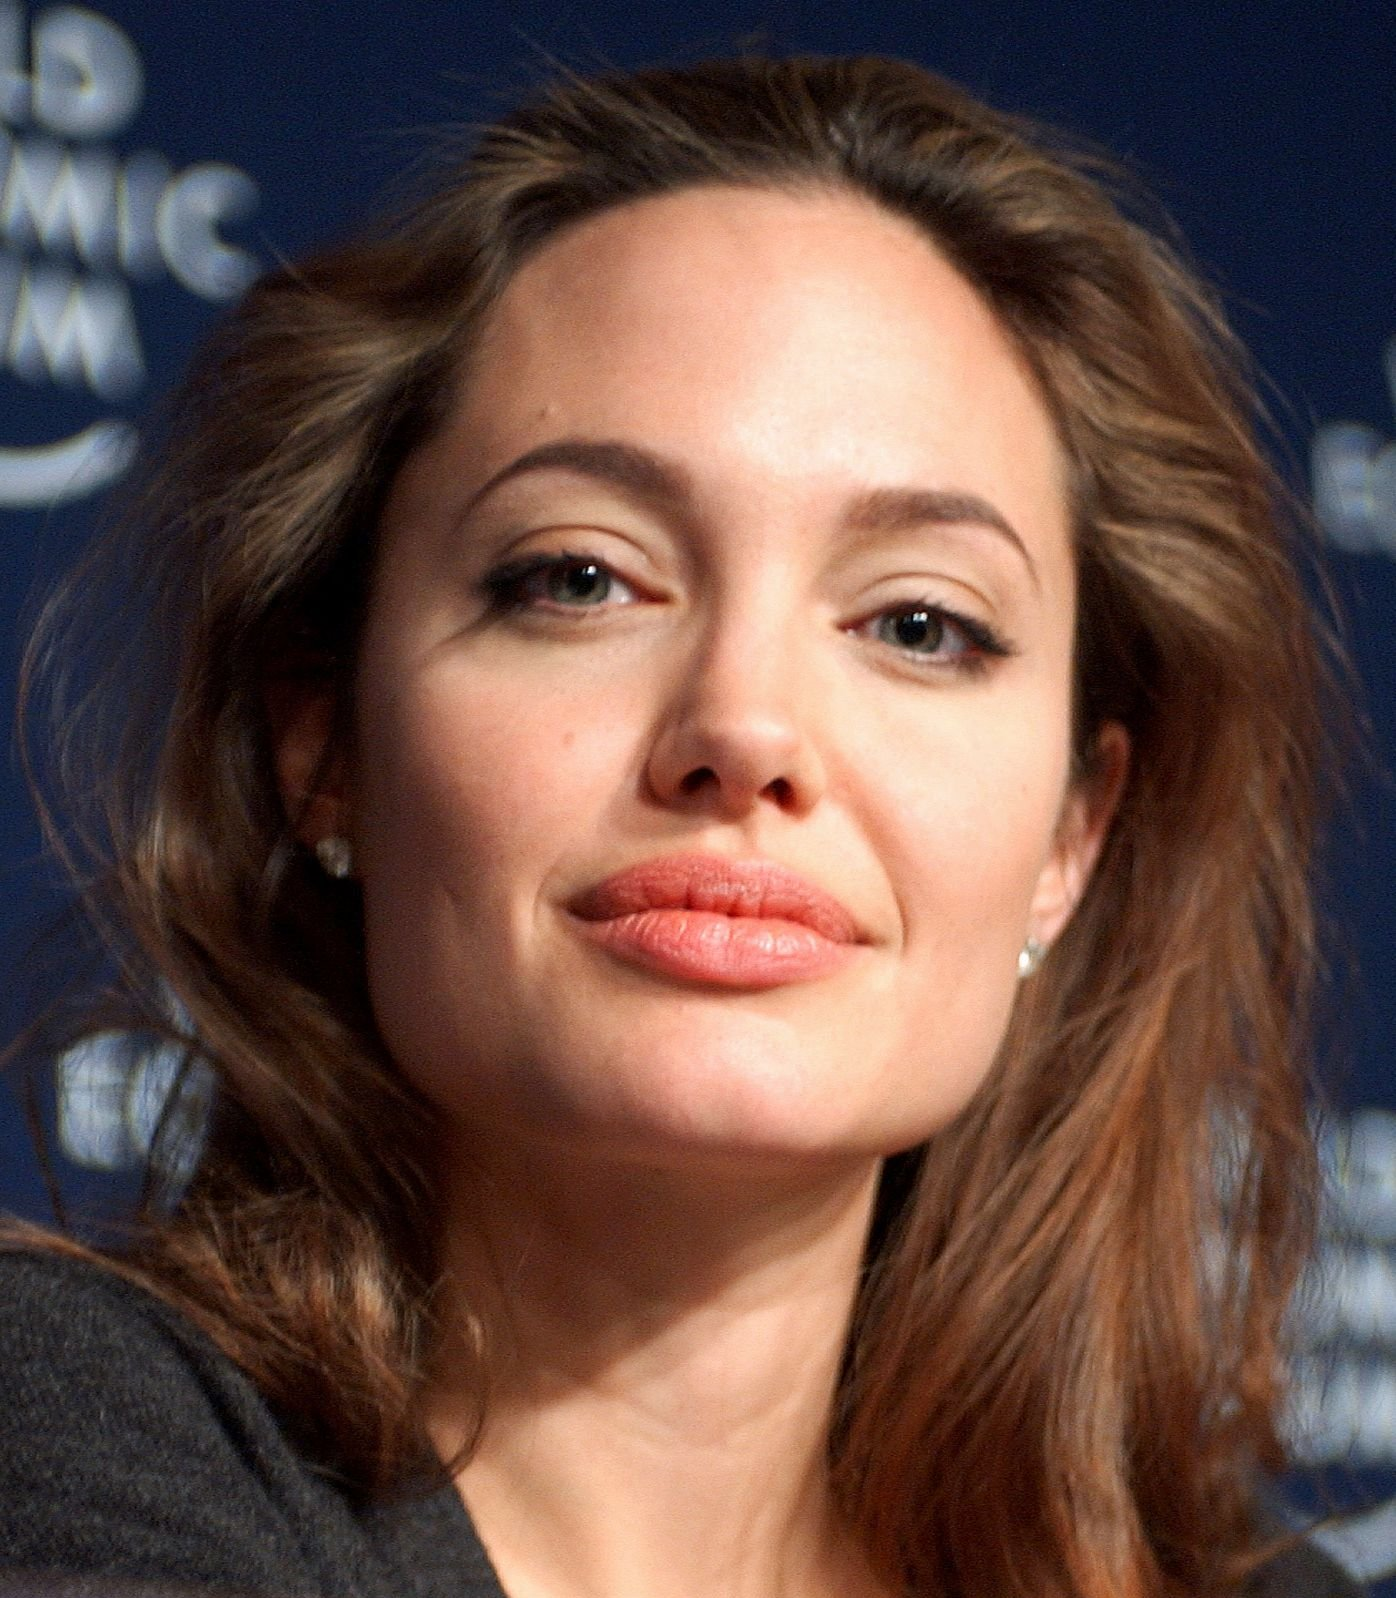 Angelina Jolie Cyborg 2 1993 angelina jolie biography age, movies, achievements and facts -